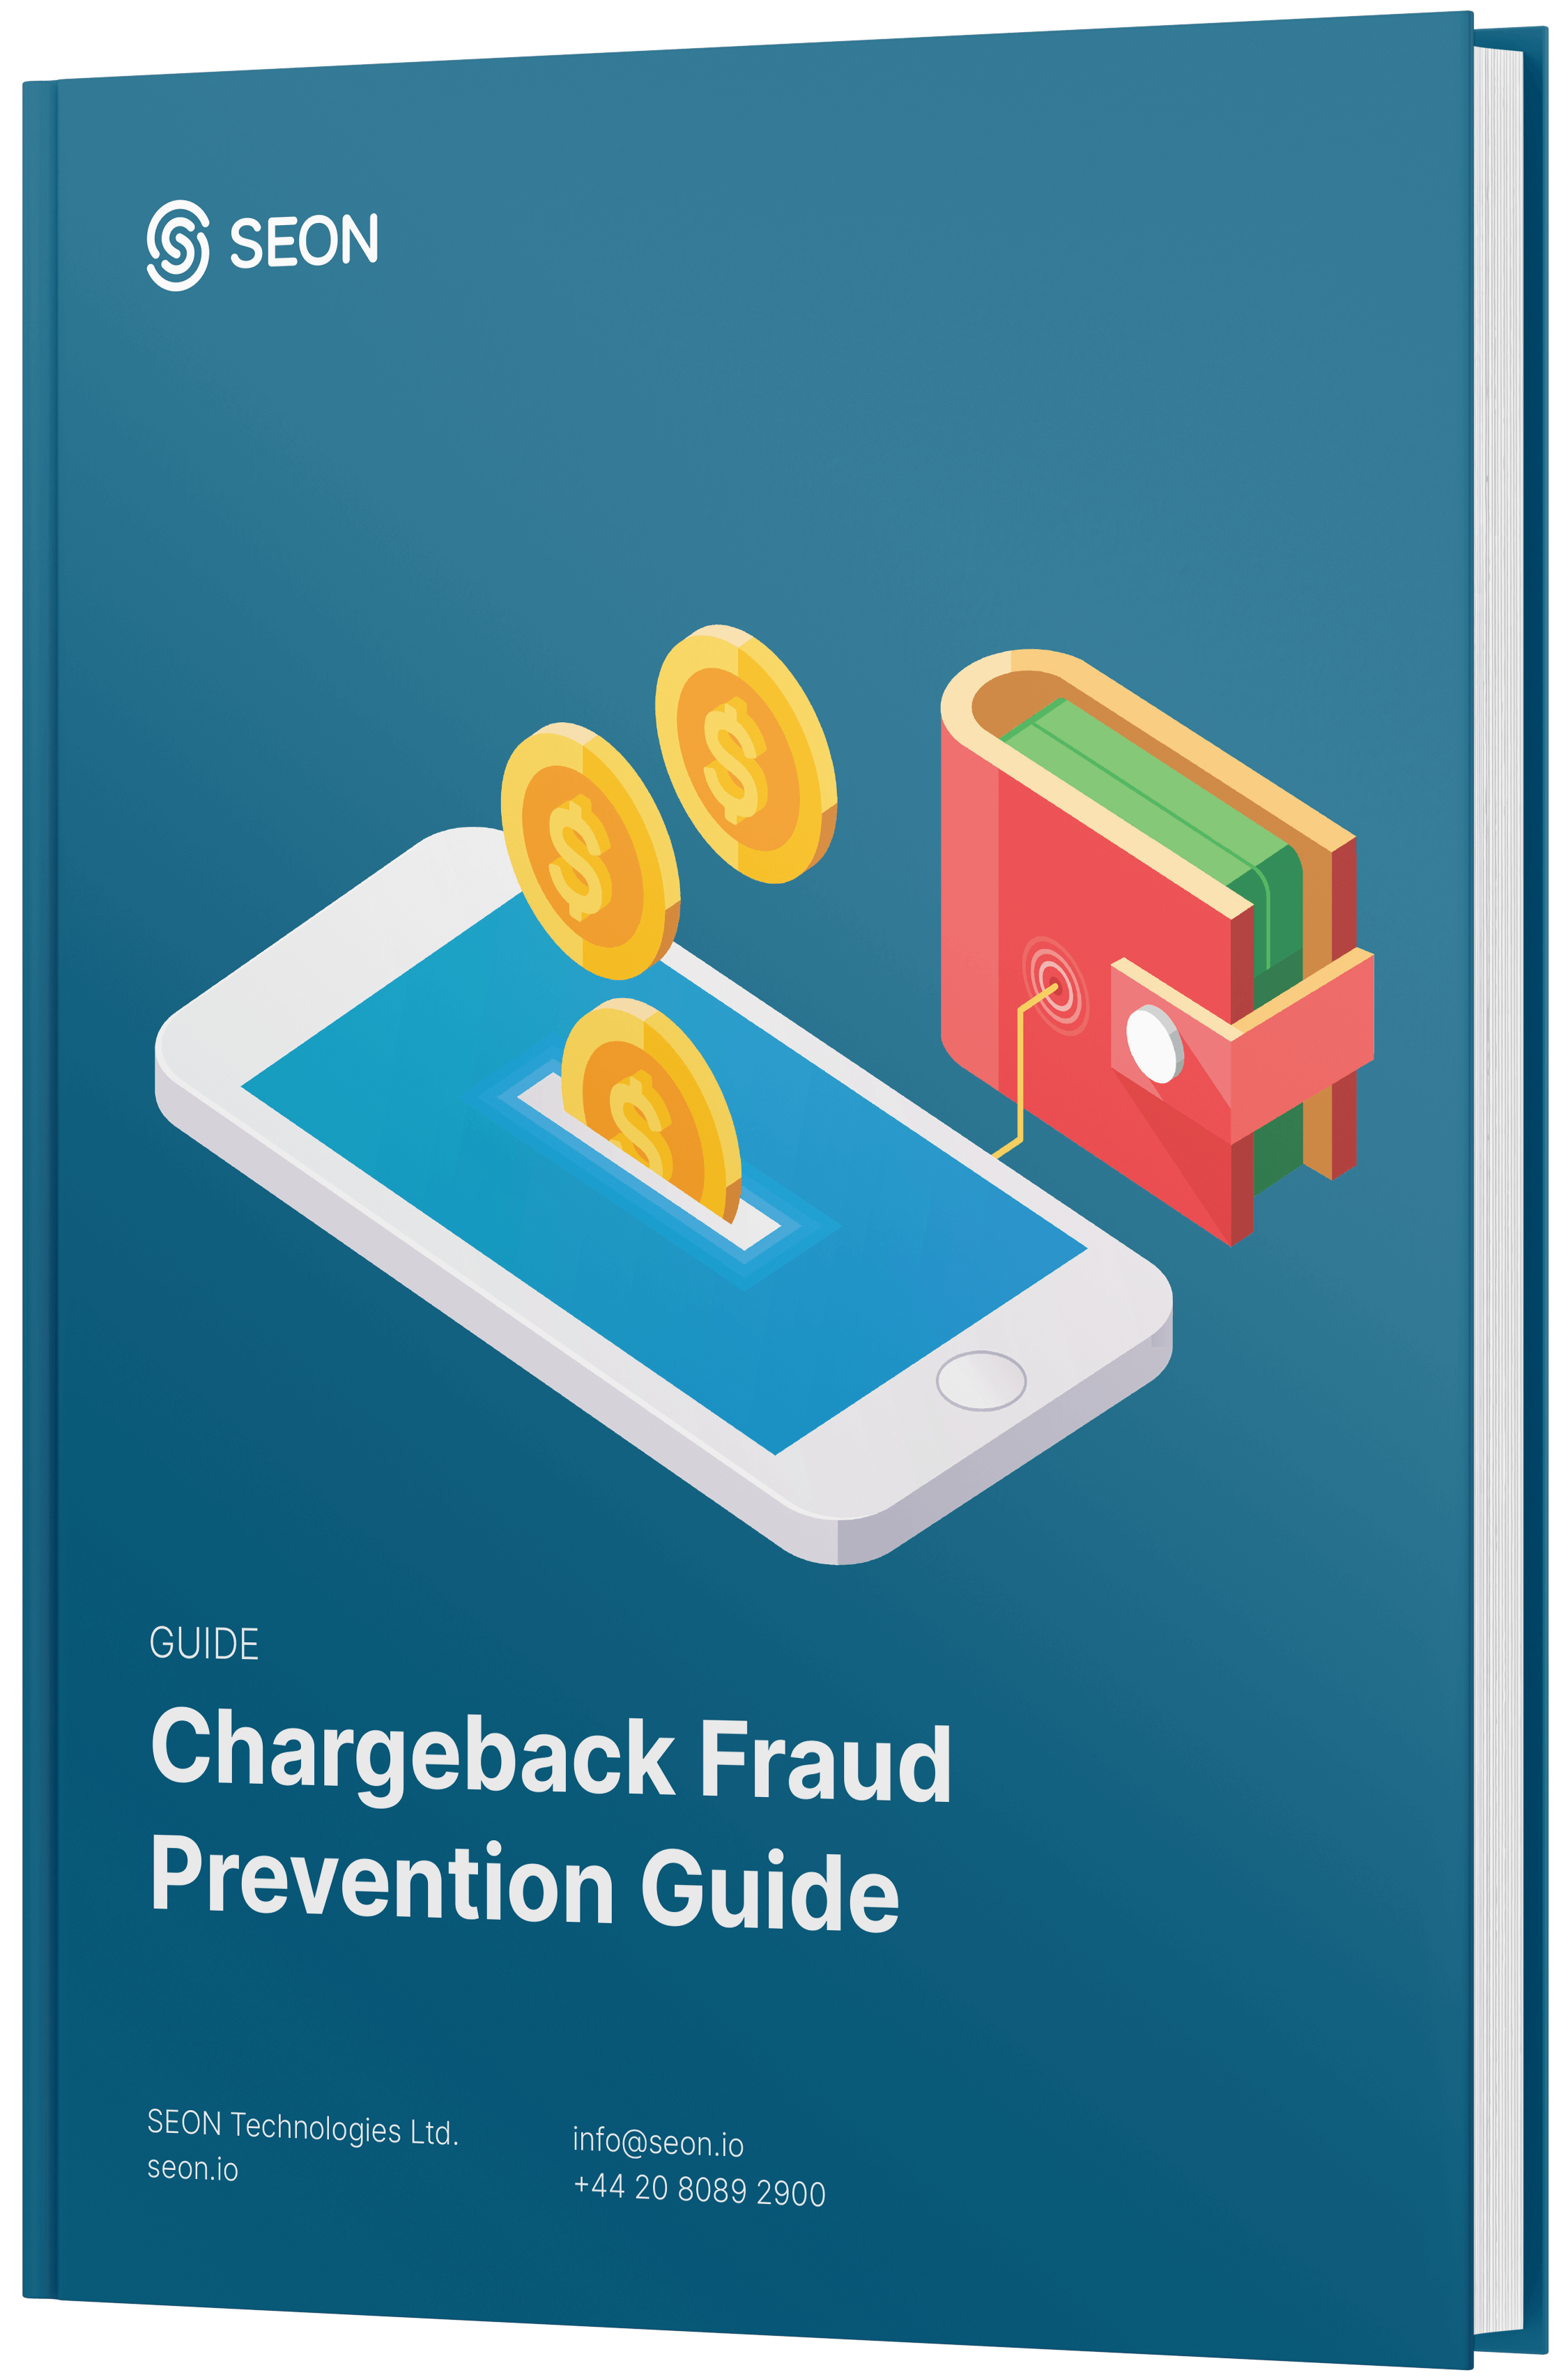 Guide to Chargeback Fraud Prevention & Detection